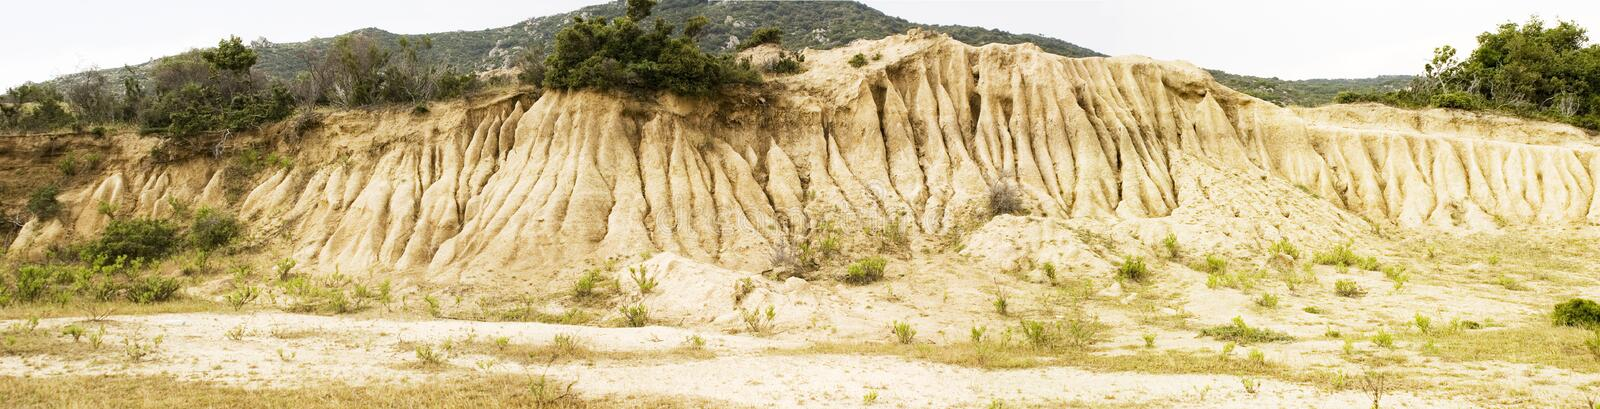 Download Sandstone Slope With Erosion Stock Photo - Image: 9750942